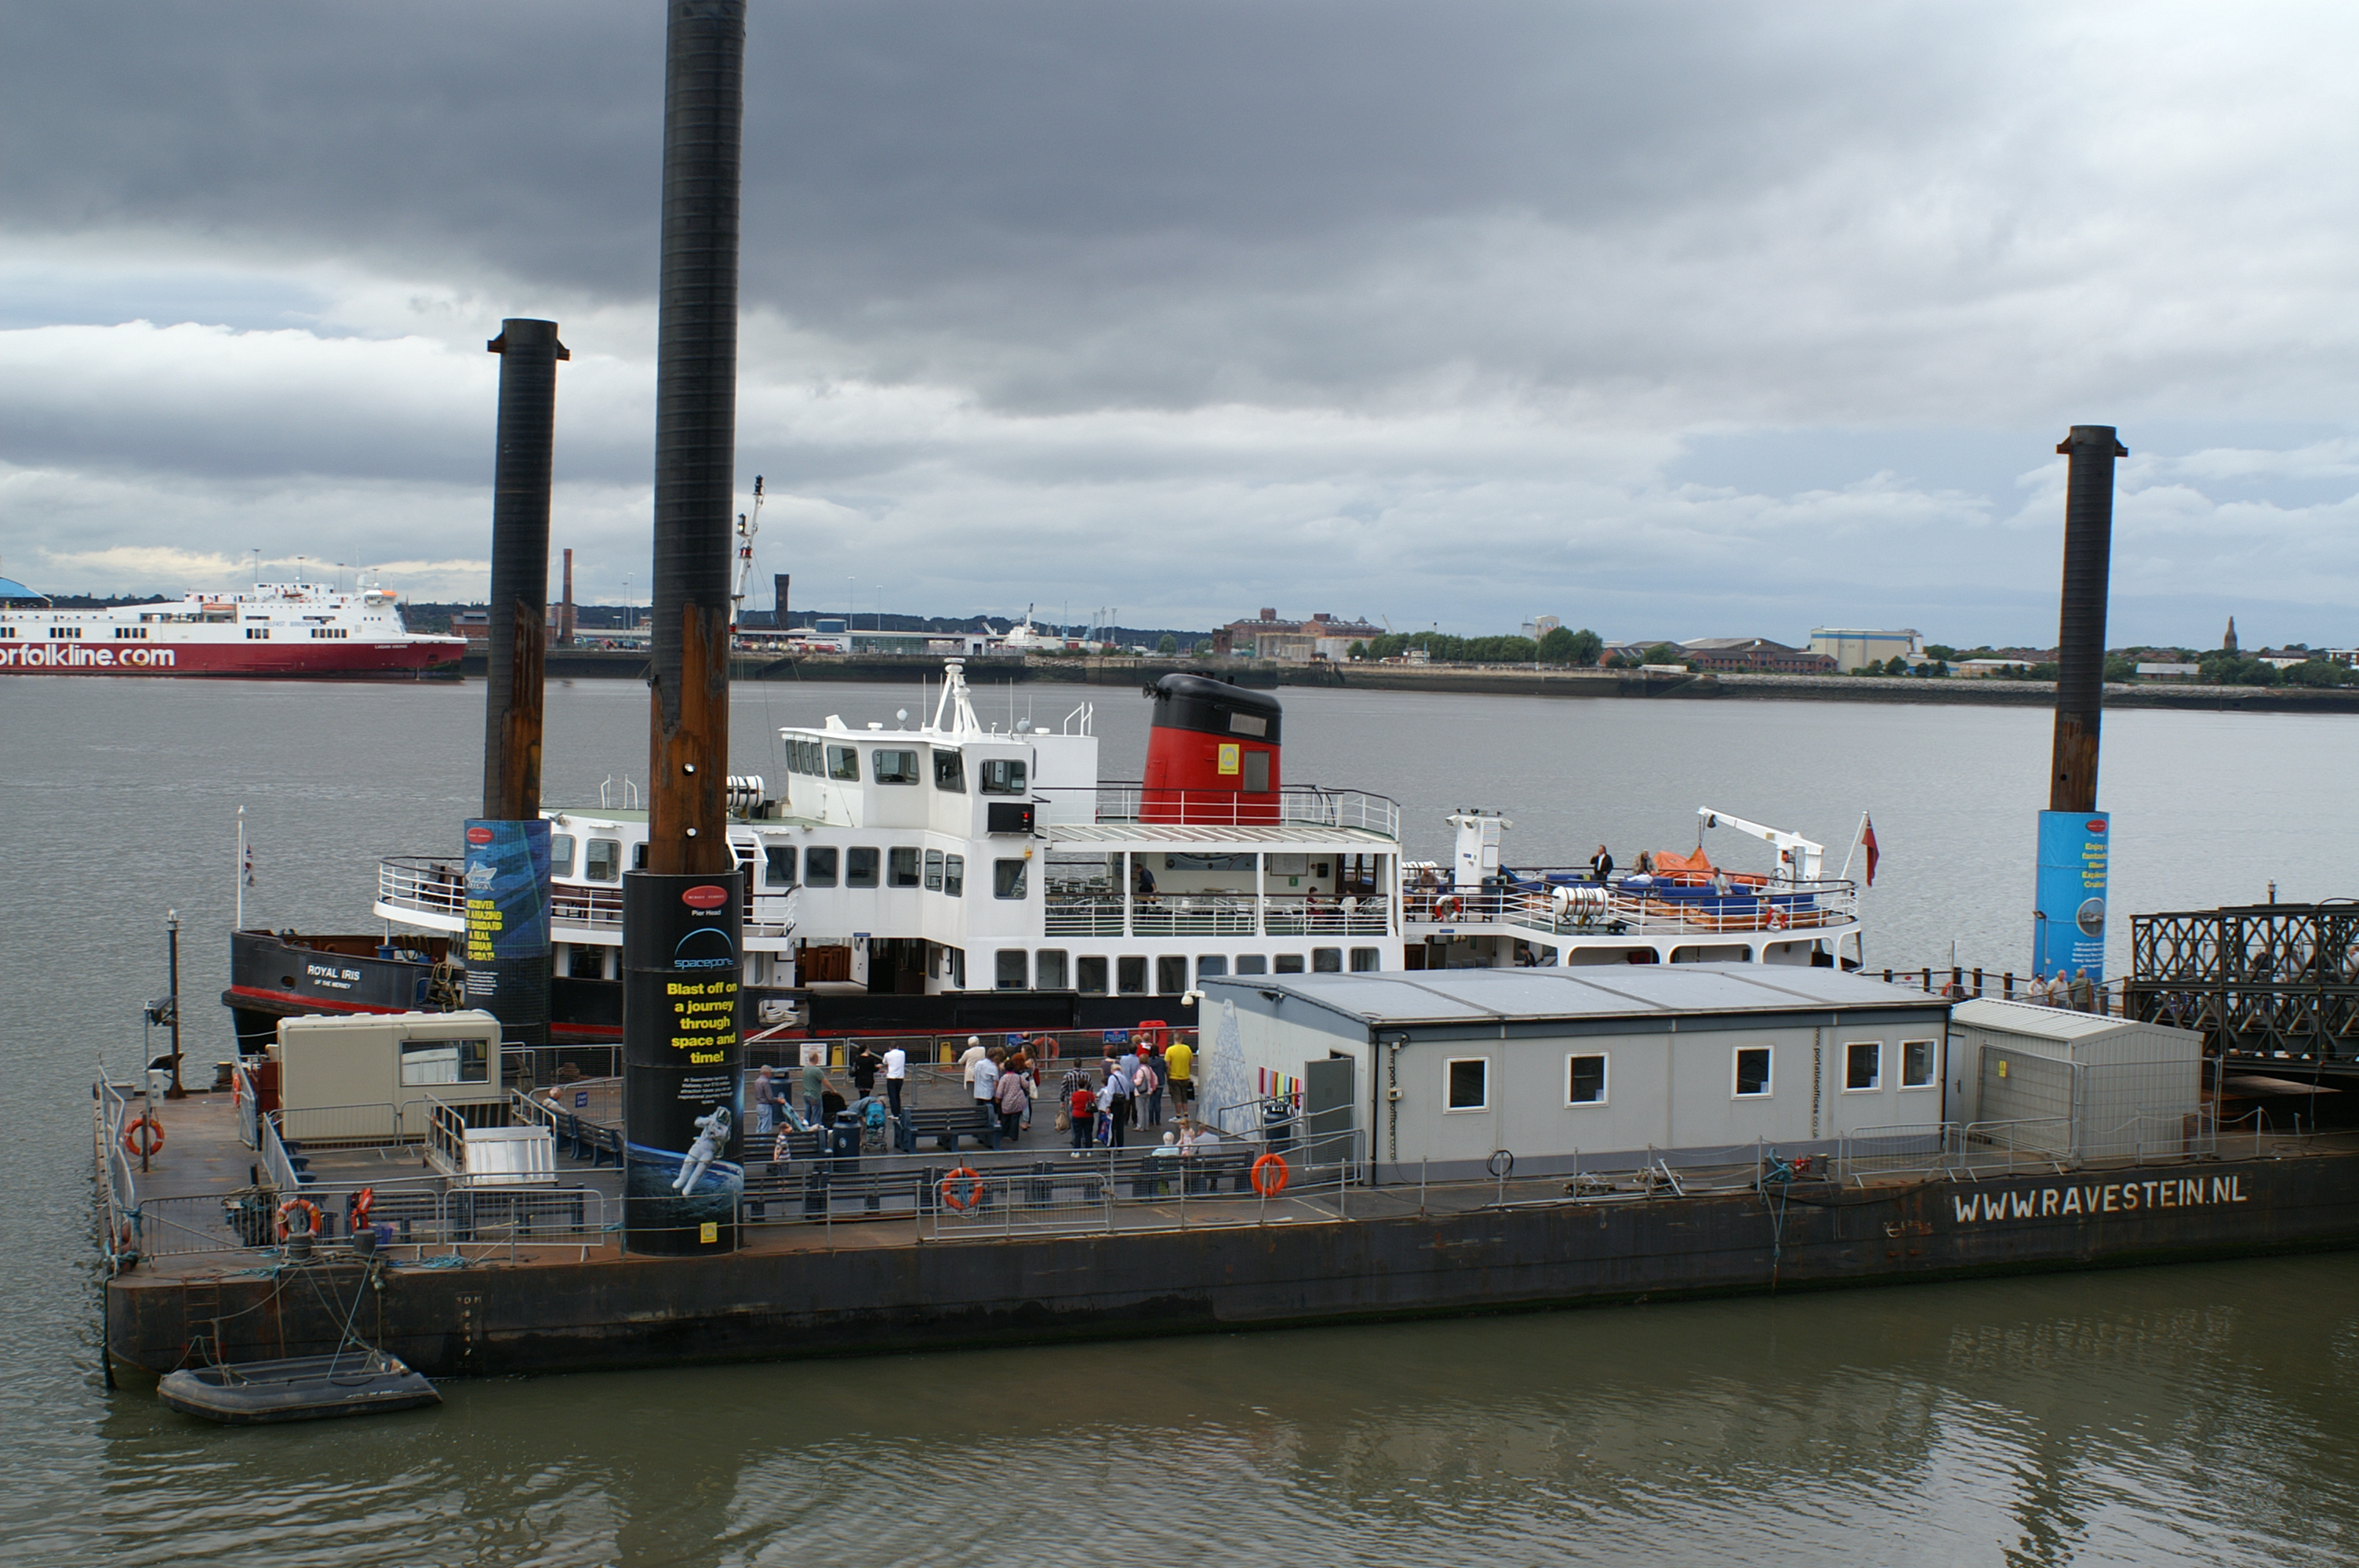 Littlewoods sponsors 'Spot the Mersey Ferry', Boat, Ferry, Liverpool, Mersey, HQ Photo